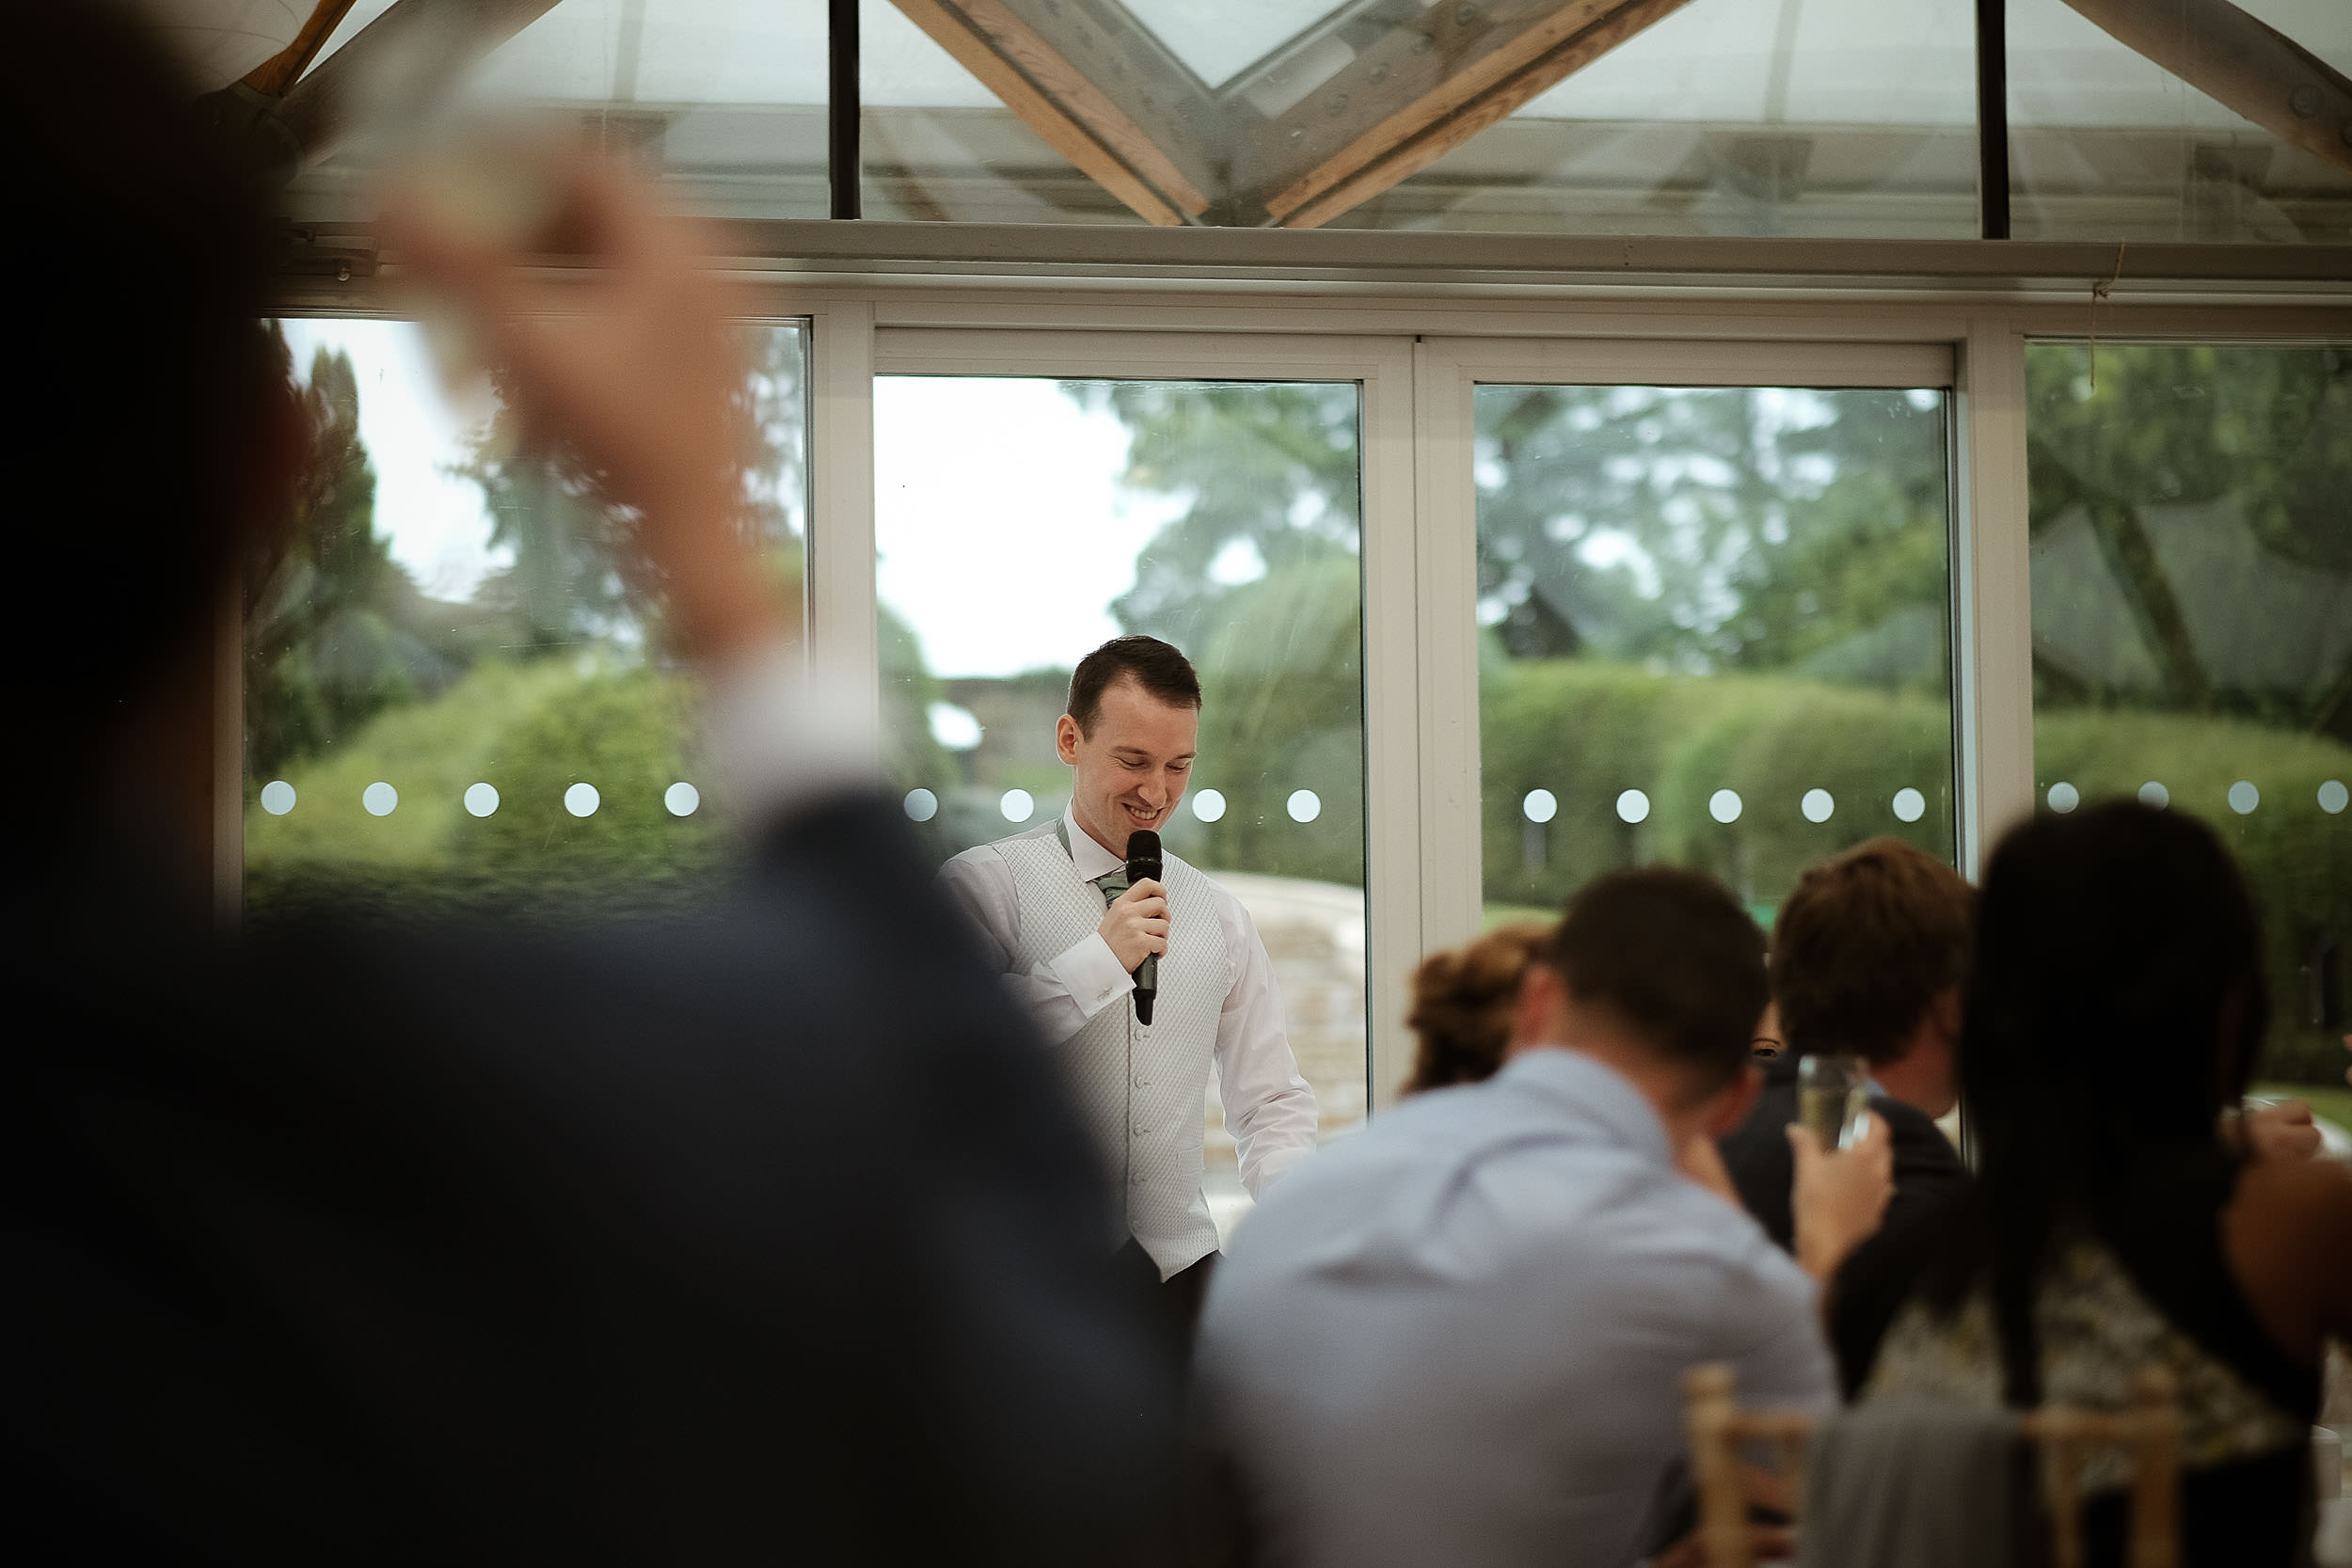 Groom giving wedding speech as guests watch